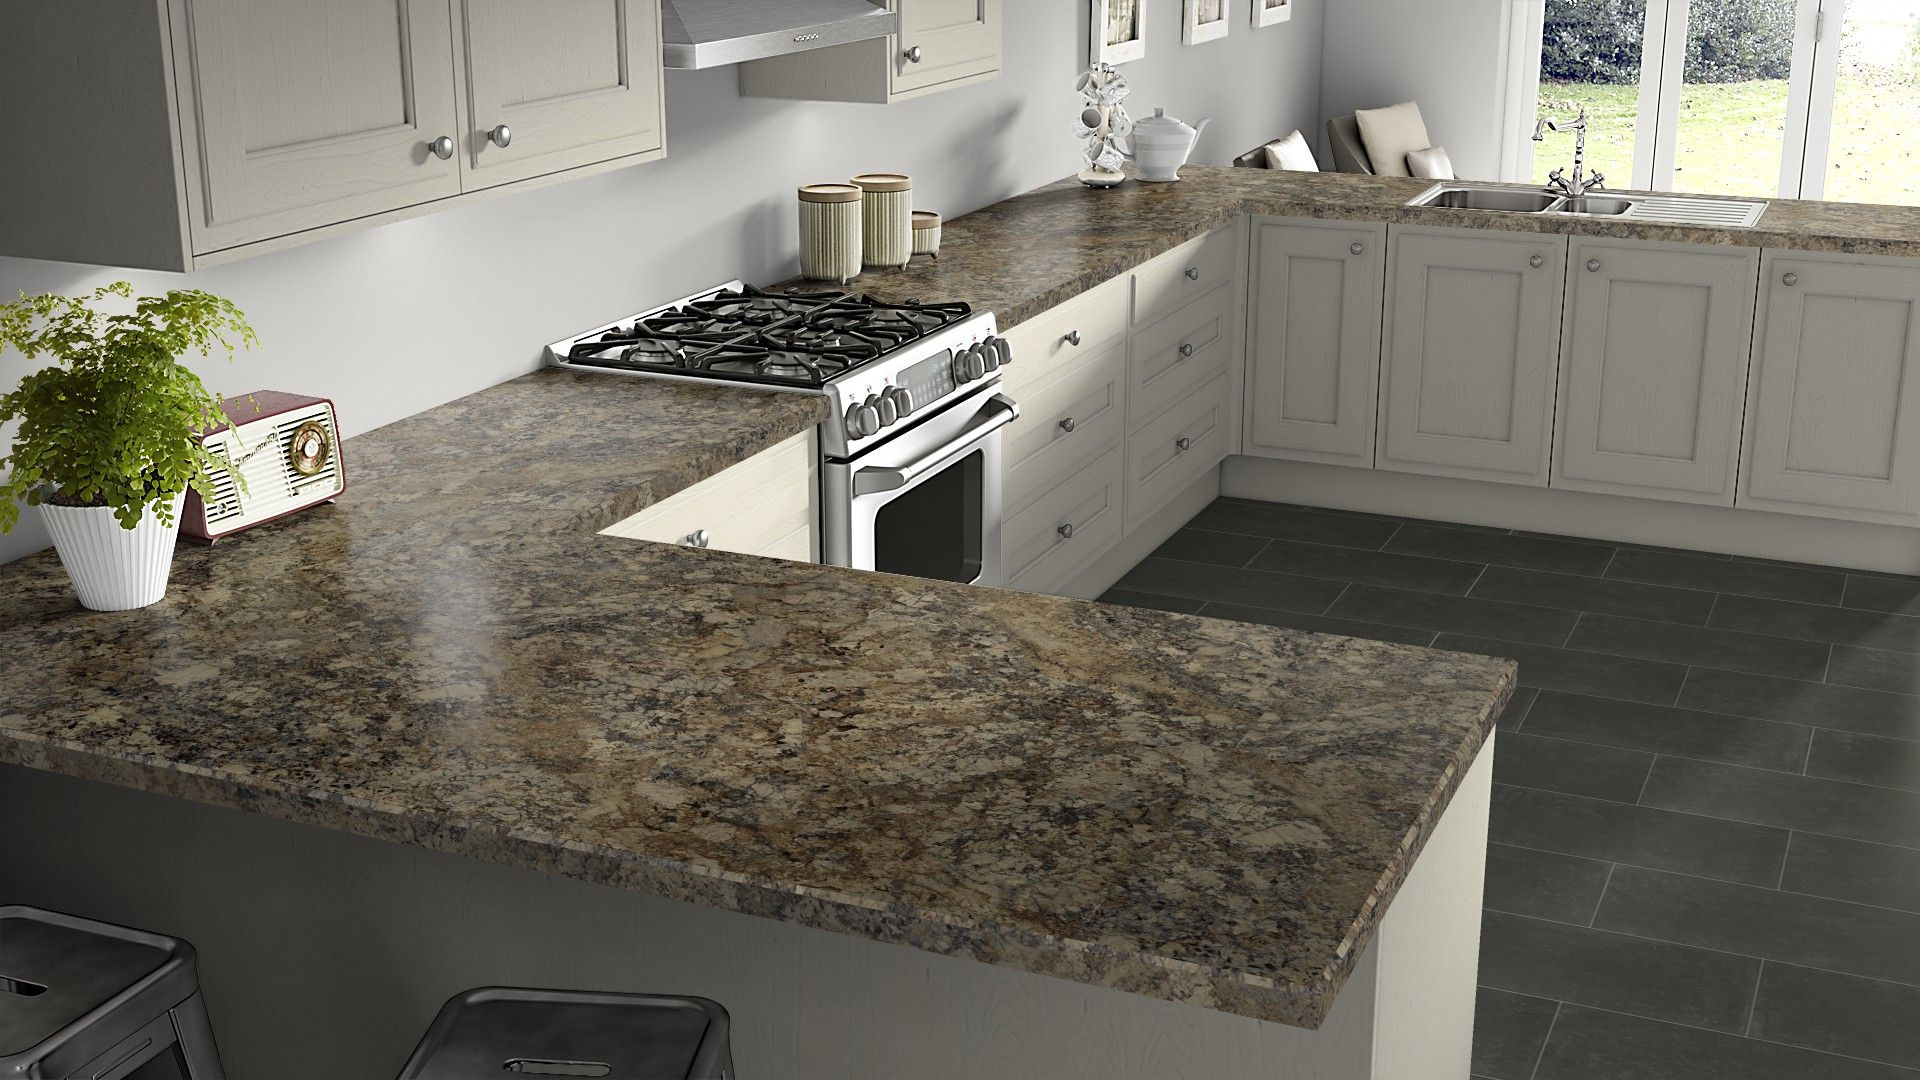 Winter Carnival Mirage Finish Get Inspired For Your Kitchen